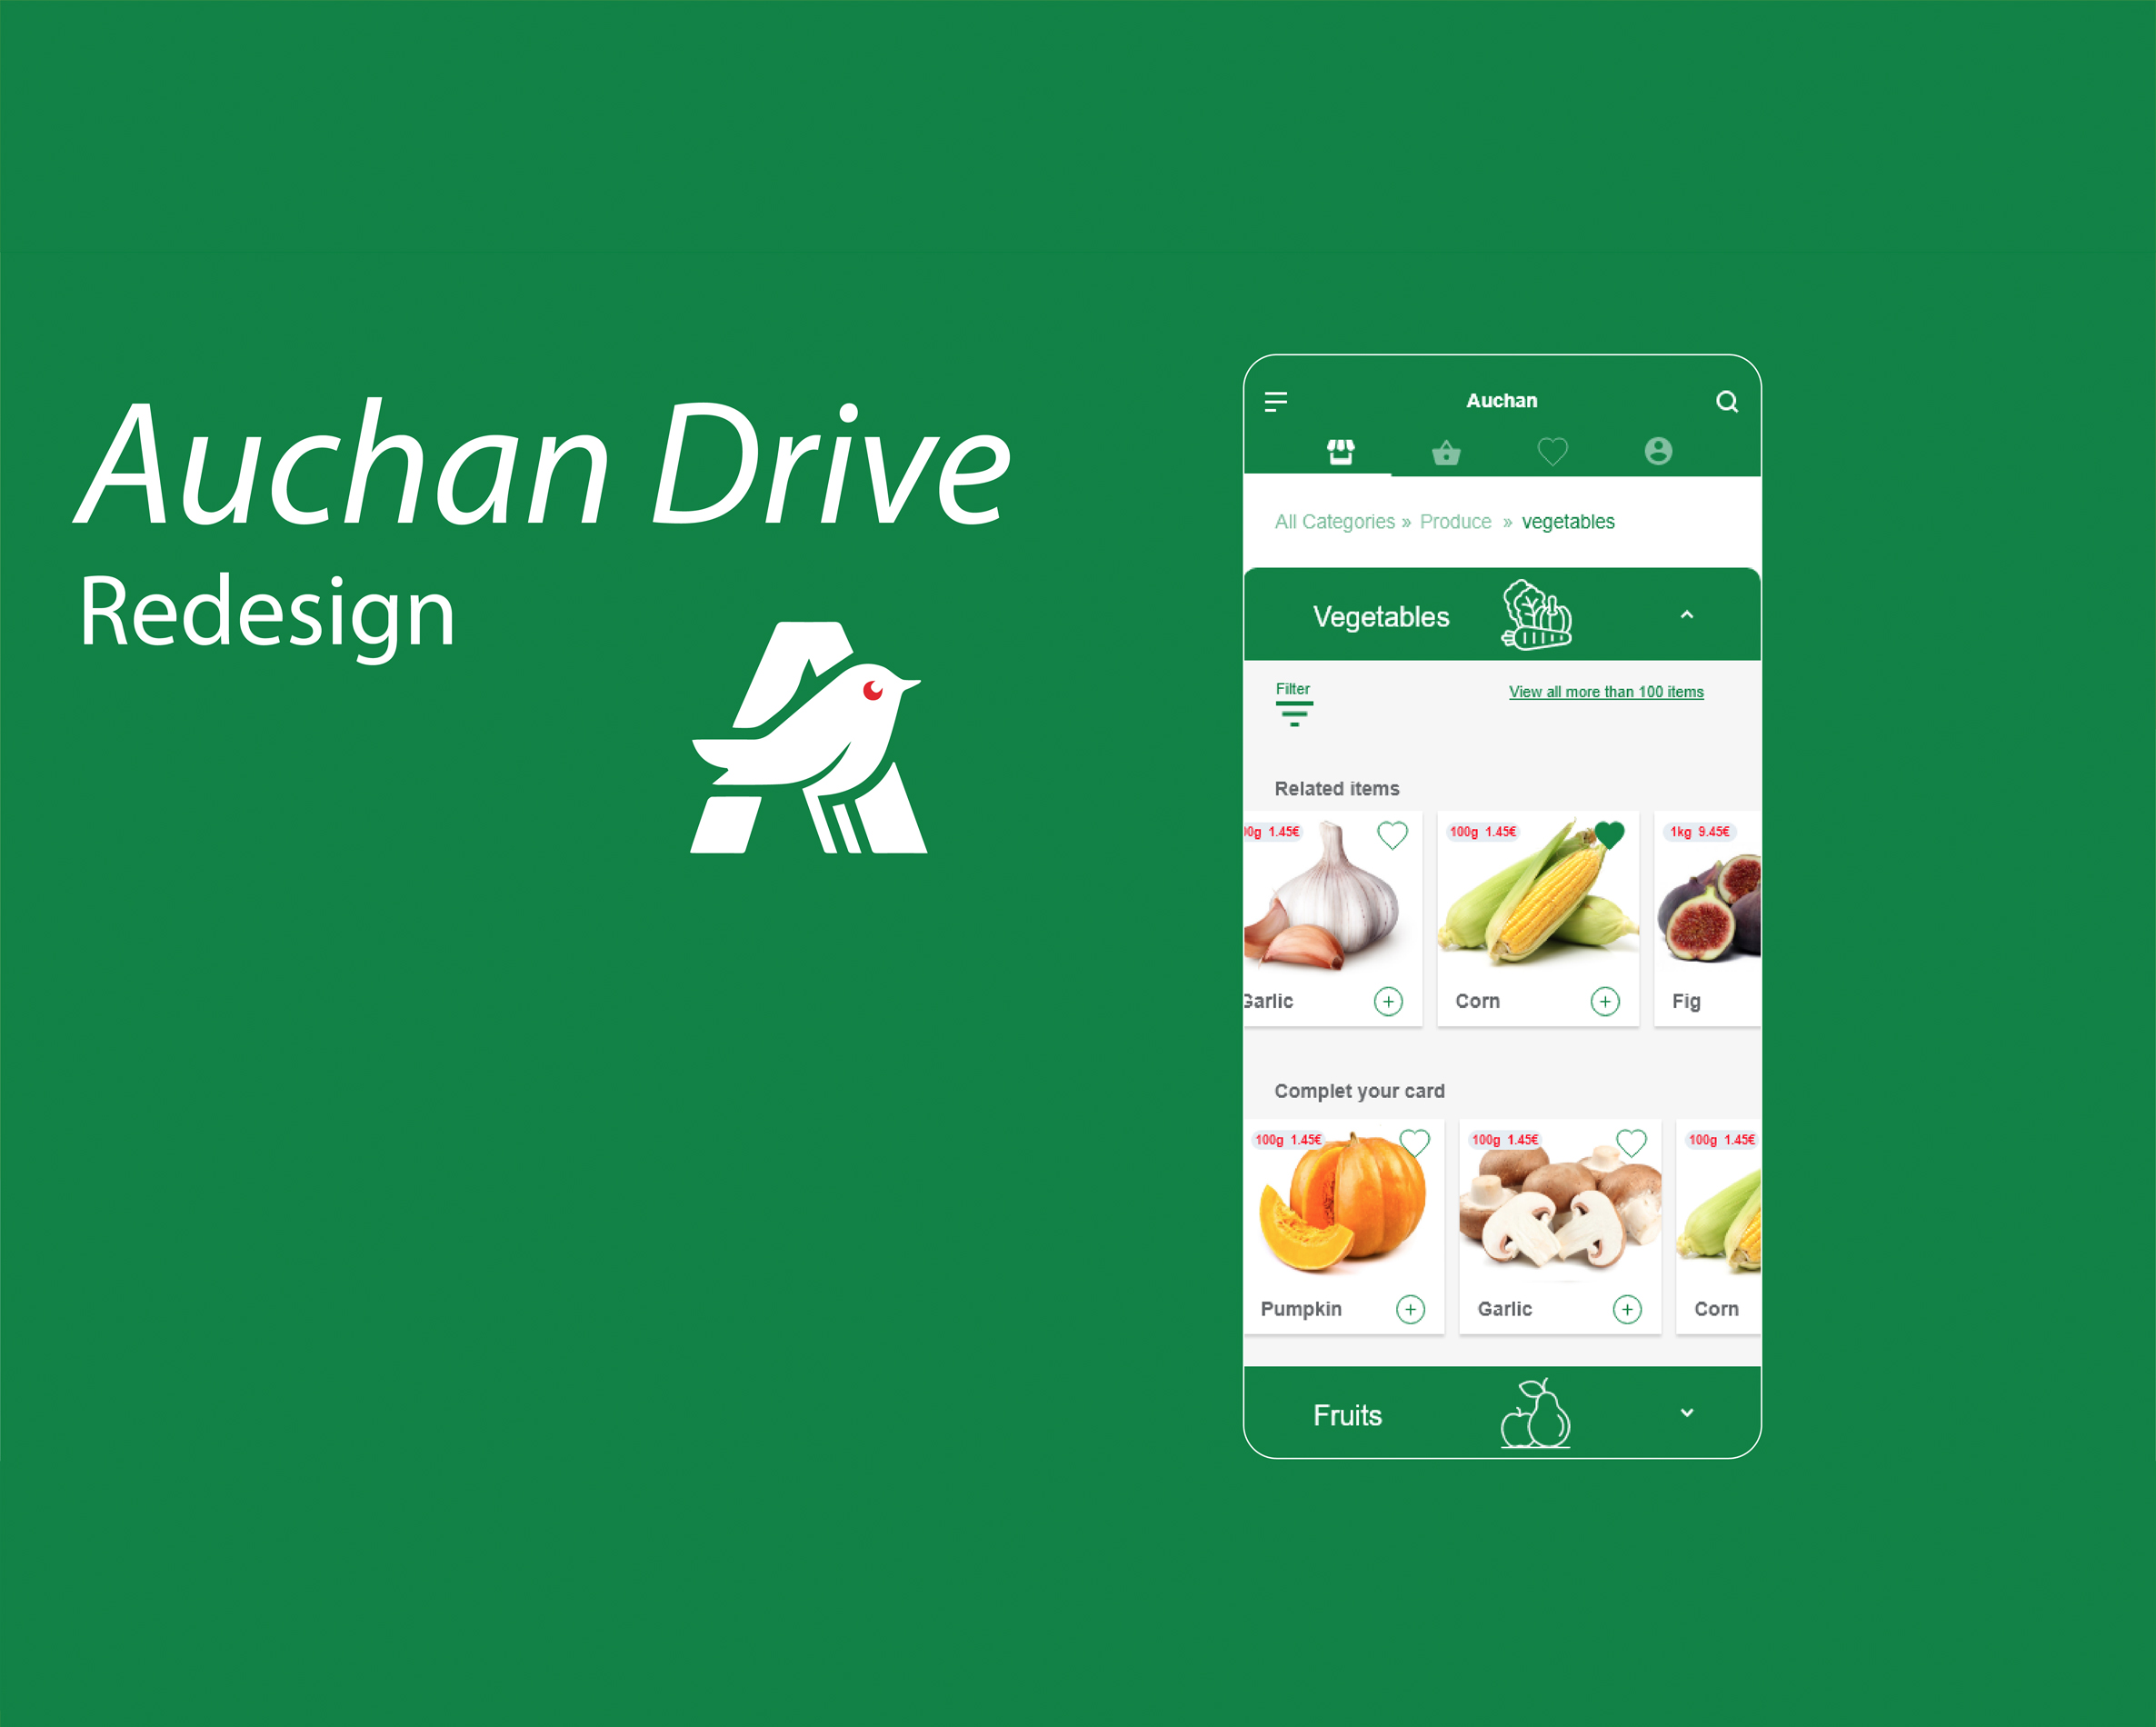 Auchan drive Redesign